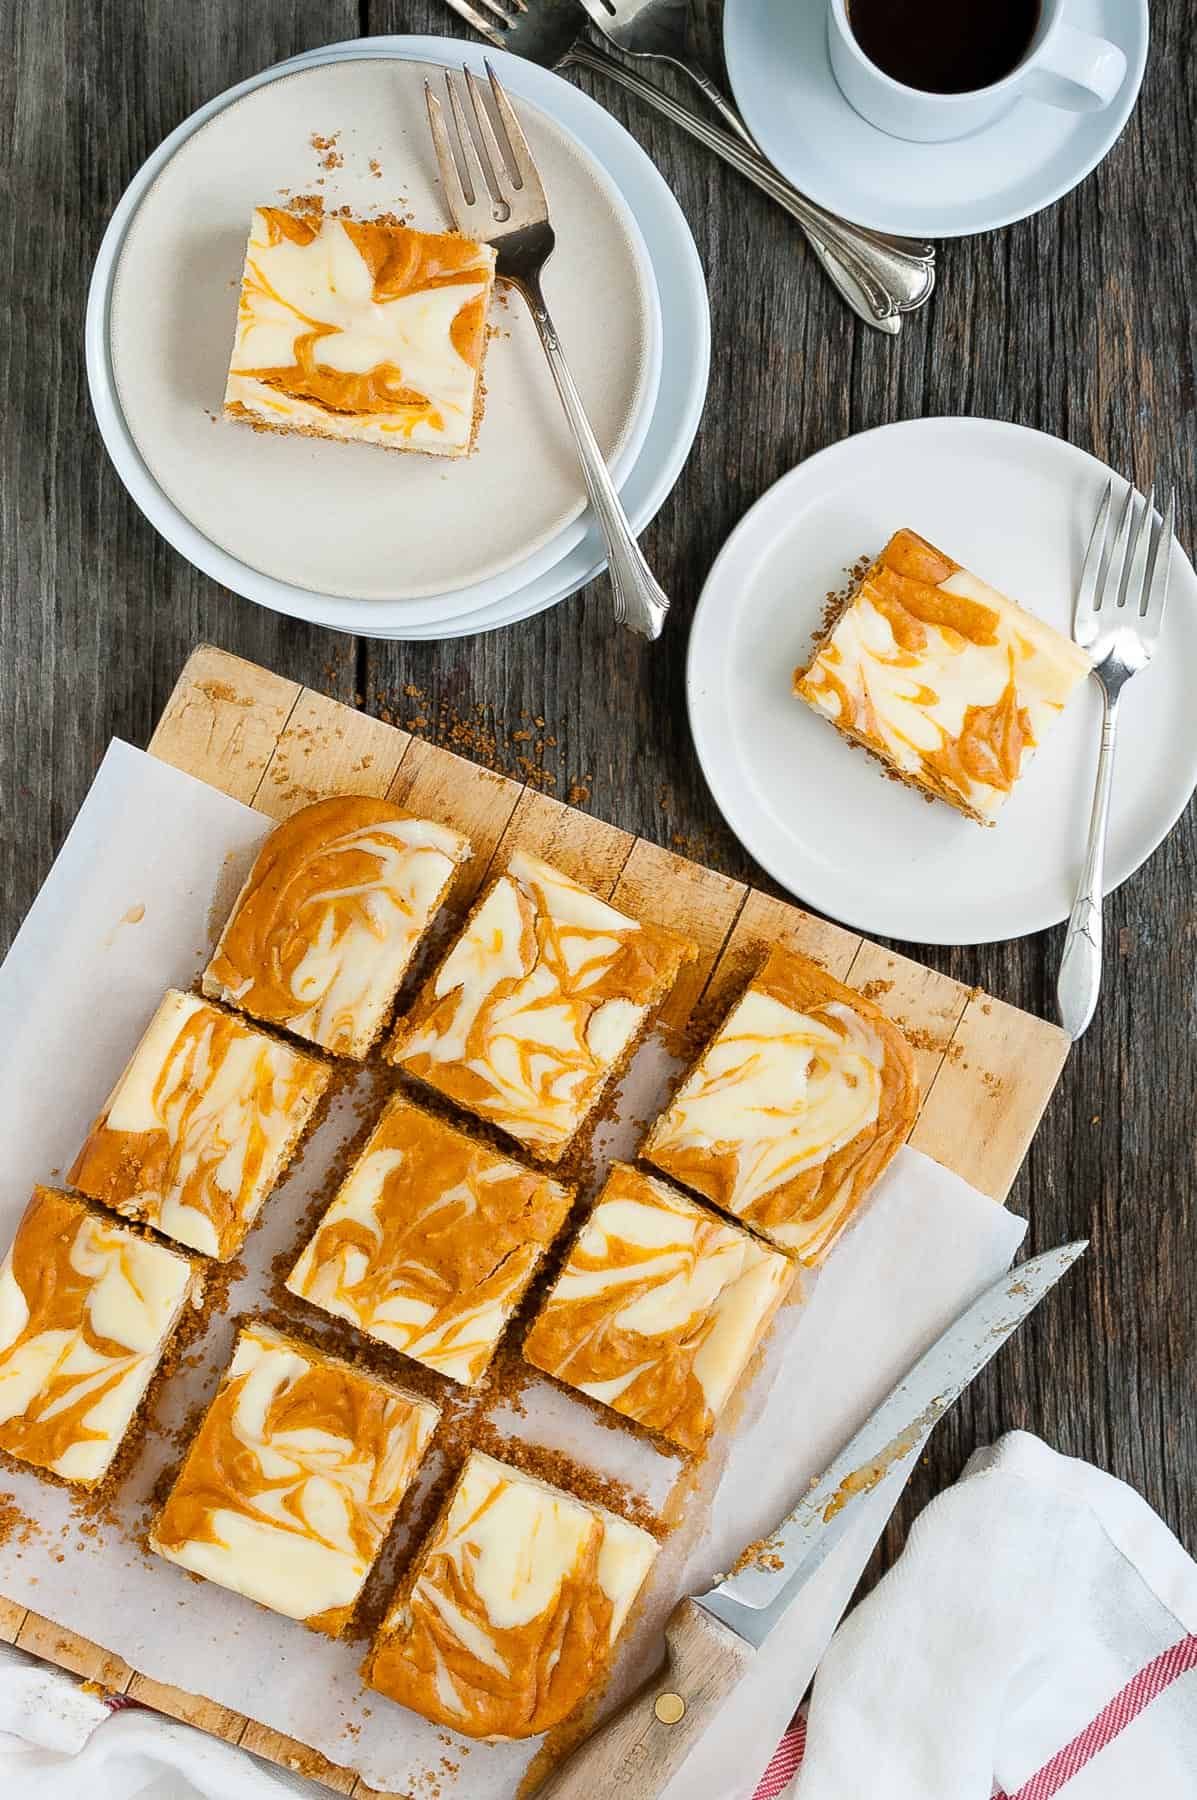 Several slices of marbled pumpkin cheesecake bars on a serving board plus two slices on plates.